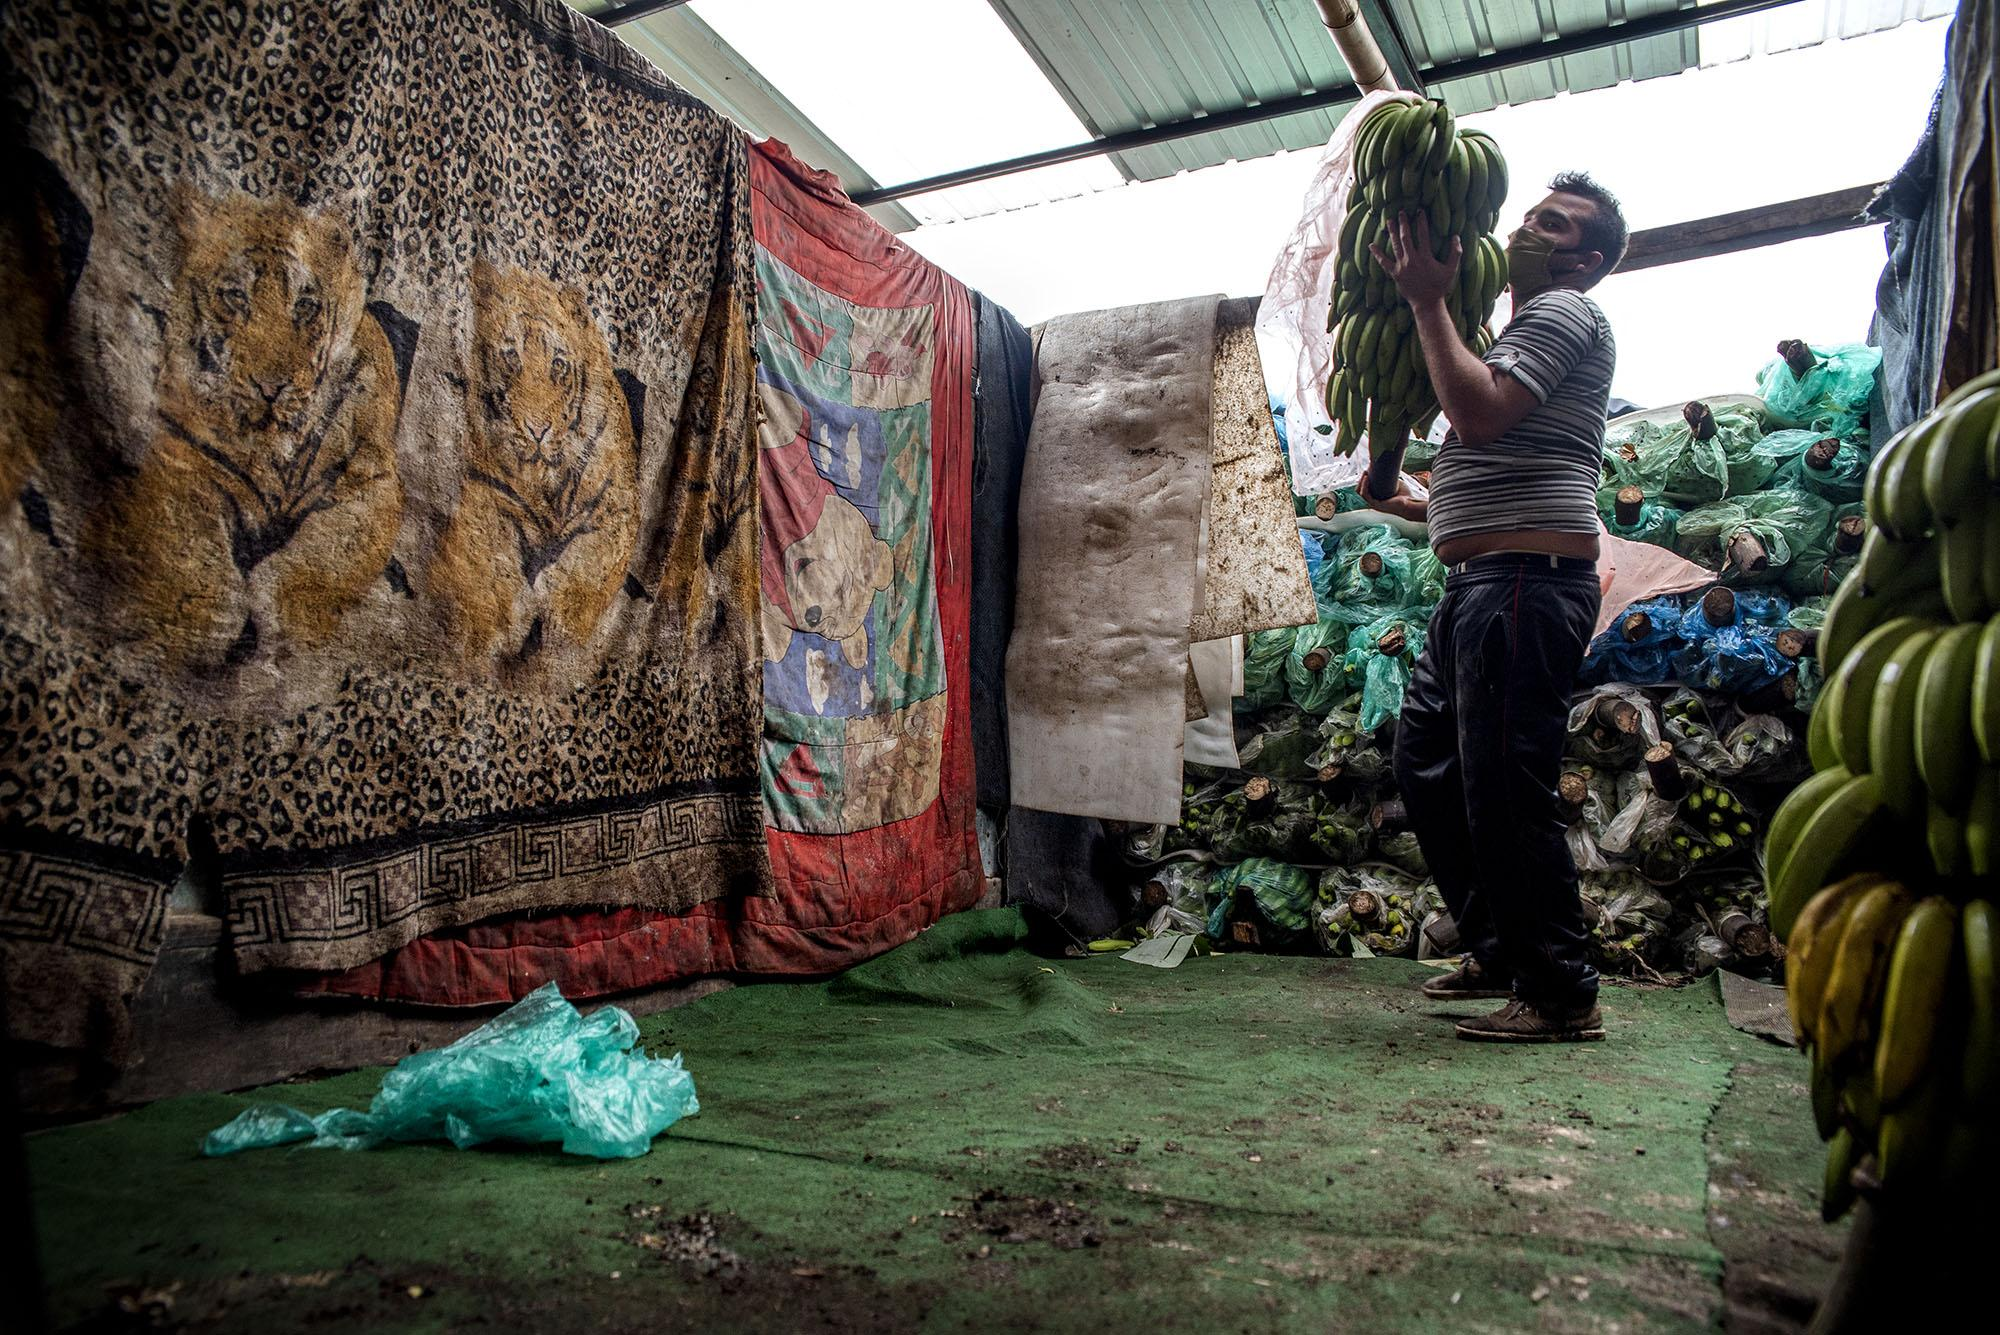 A banana seller unloads his products from the truck on Thursday, Abril 30, 2020 in Quito - Ecuador. Johis Alarcón for The New York Times.